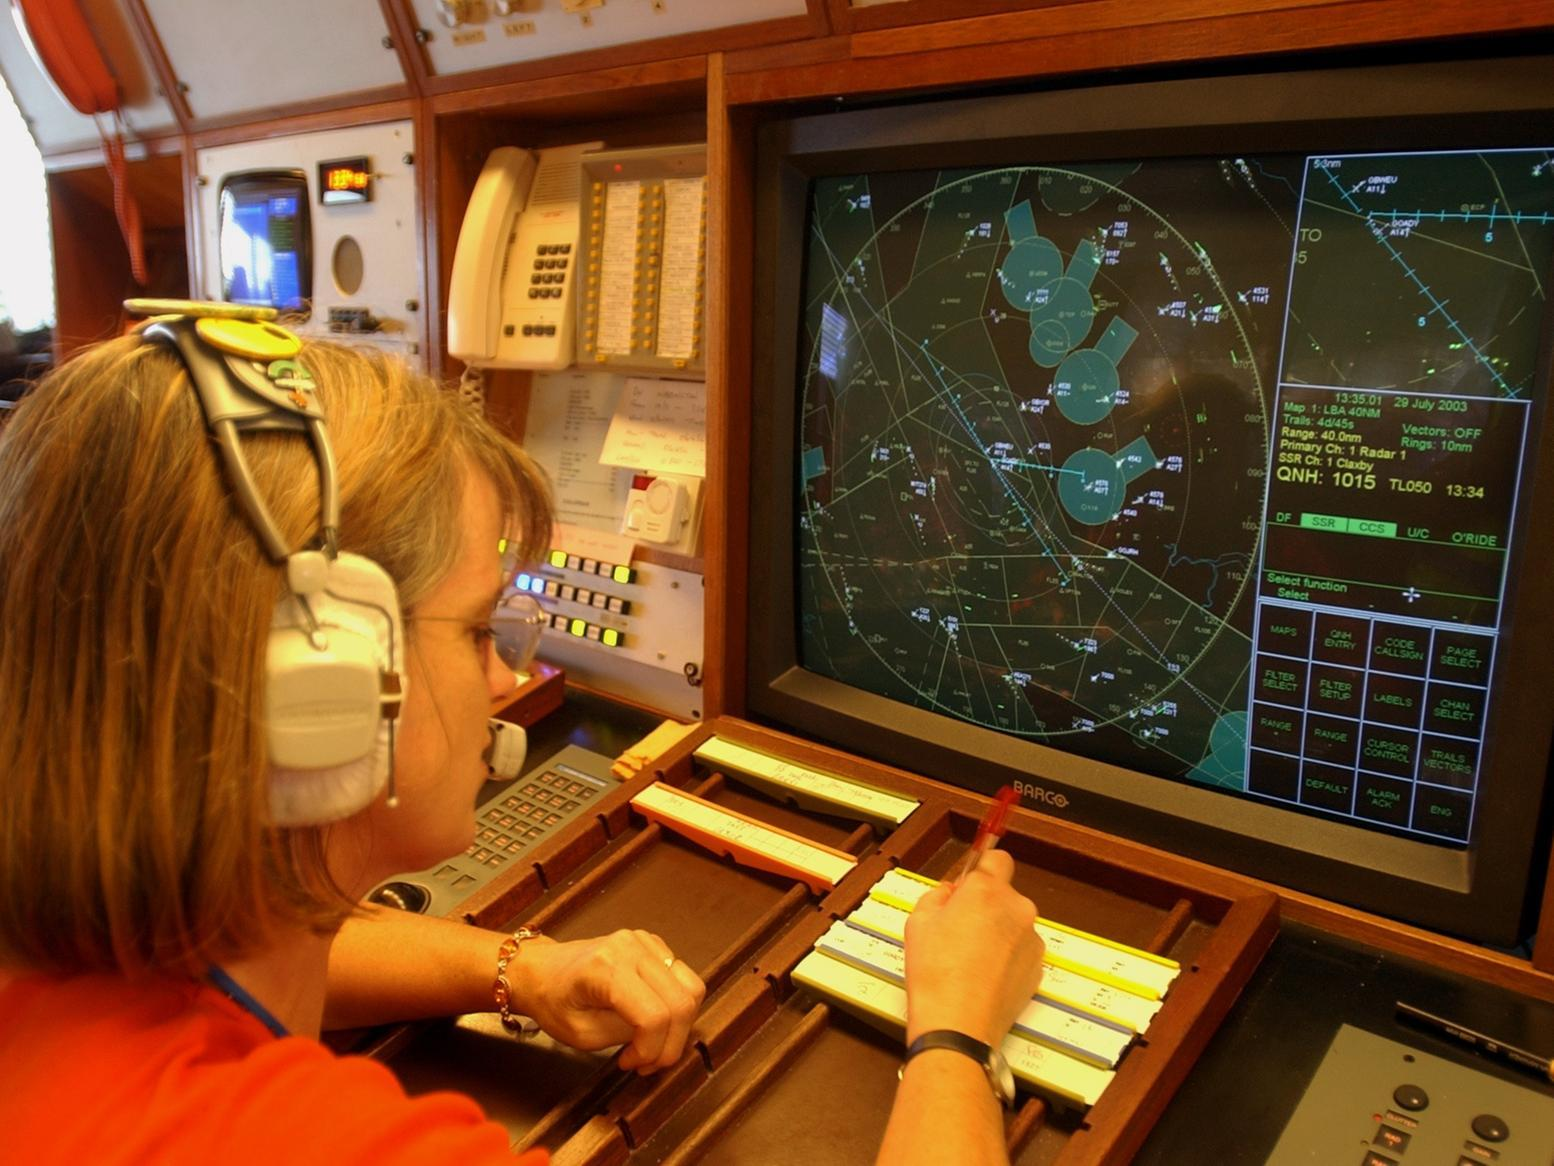 Go behind the scenes at Leeds Bradford Airport in the early 2000s